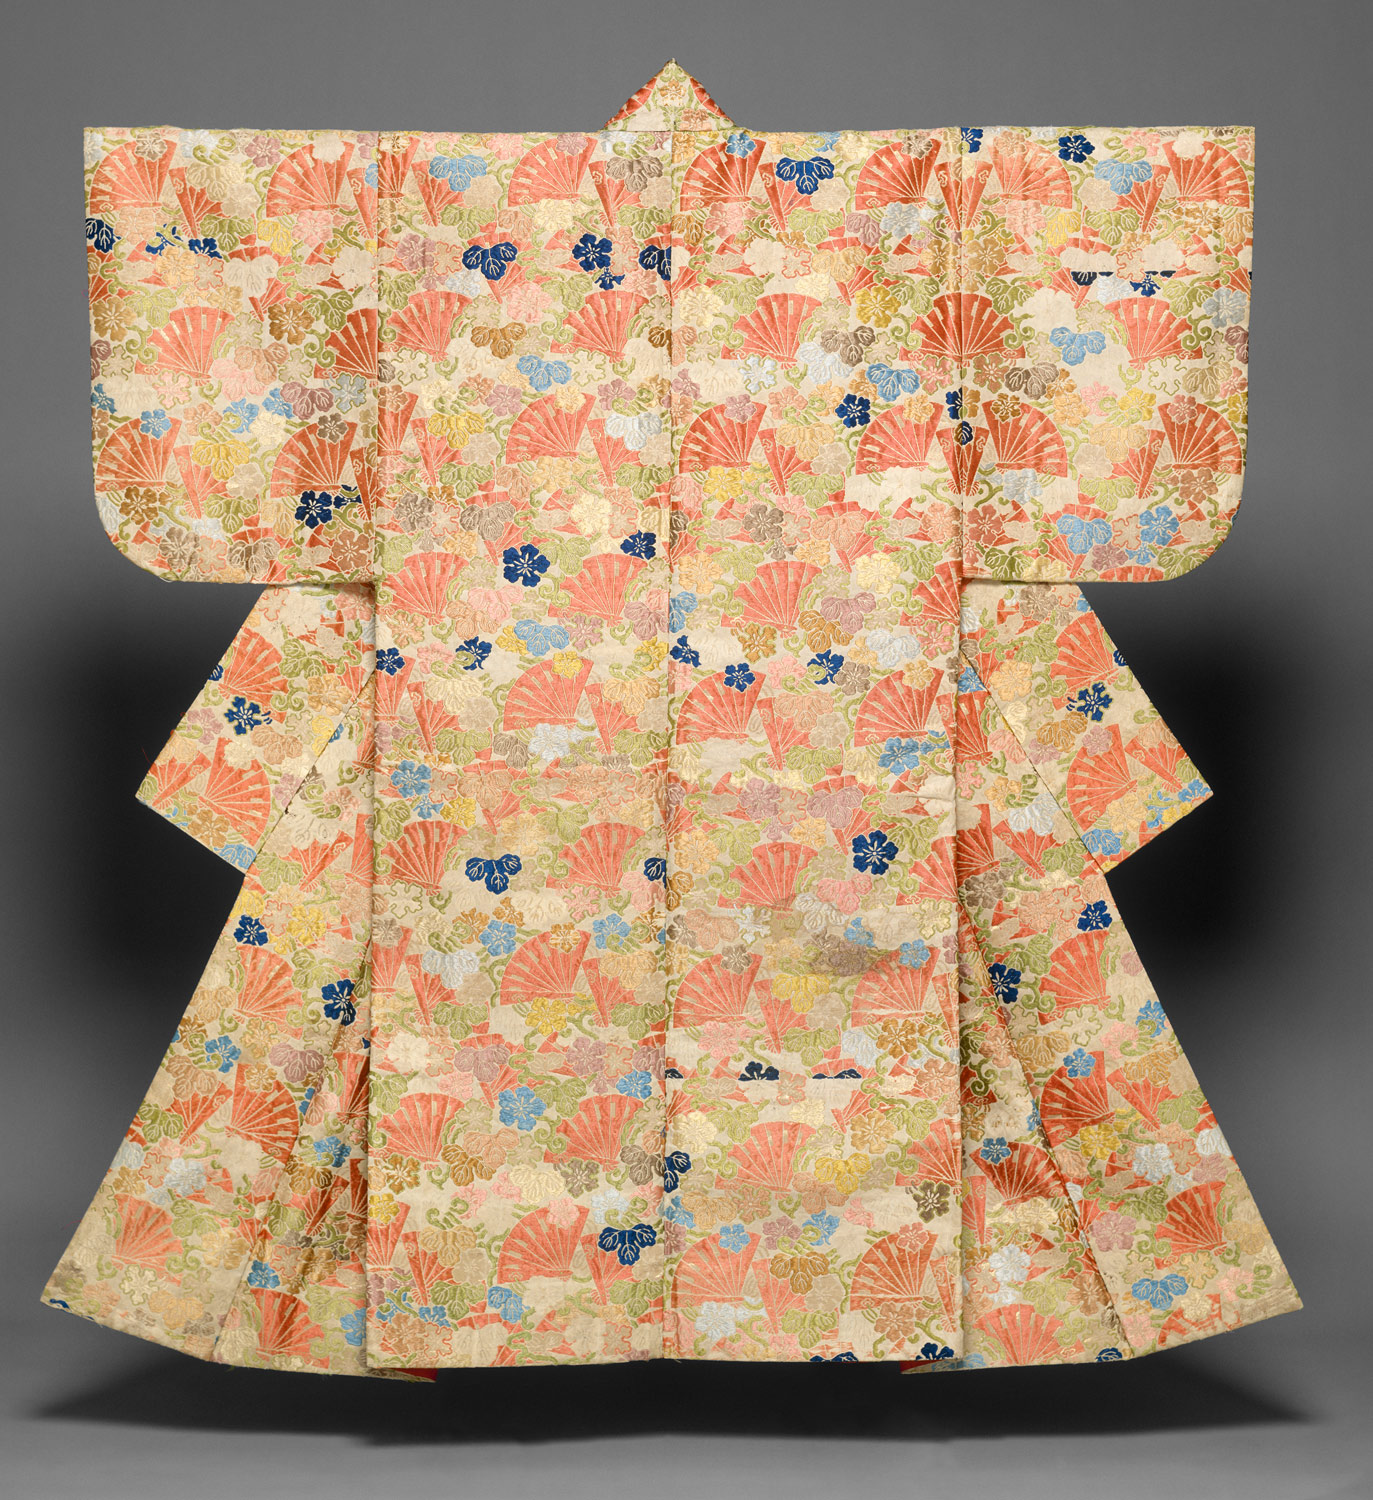 Noh costume (karaori) with cypress fans and yûgao blossoms